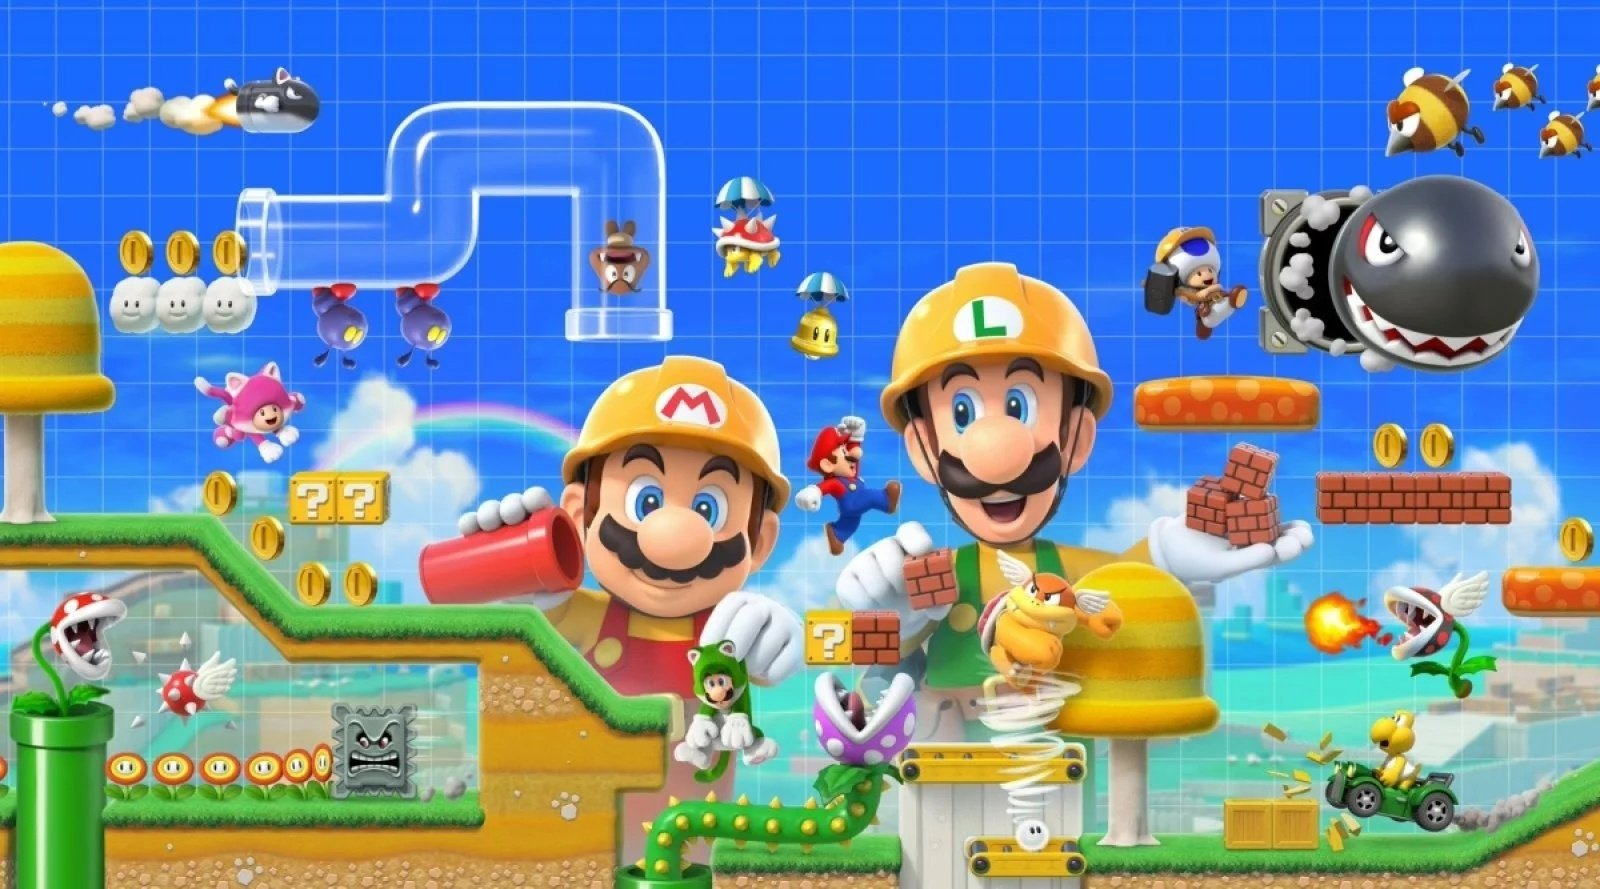 Japanese Charts: Super Mario Maker 2 Stays In Top Spot, As Switch Sales Slightly Drop